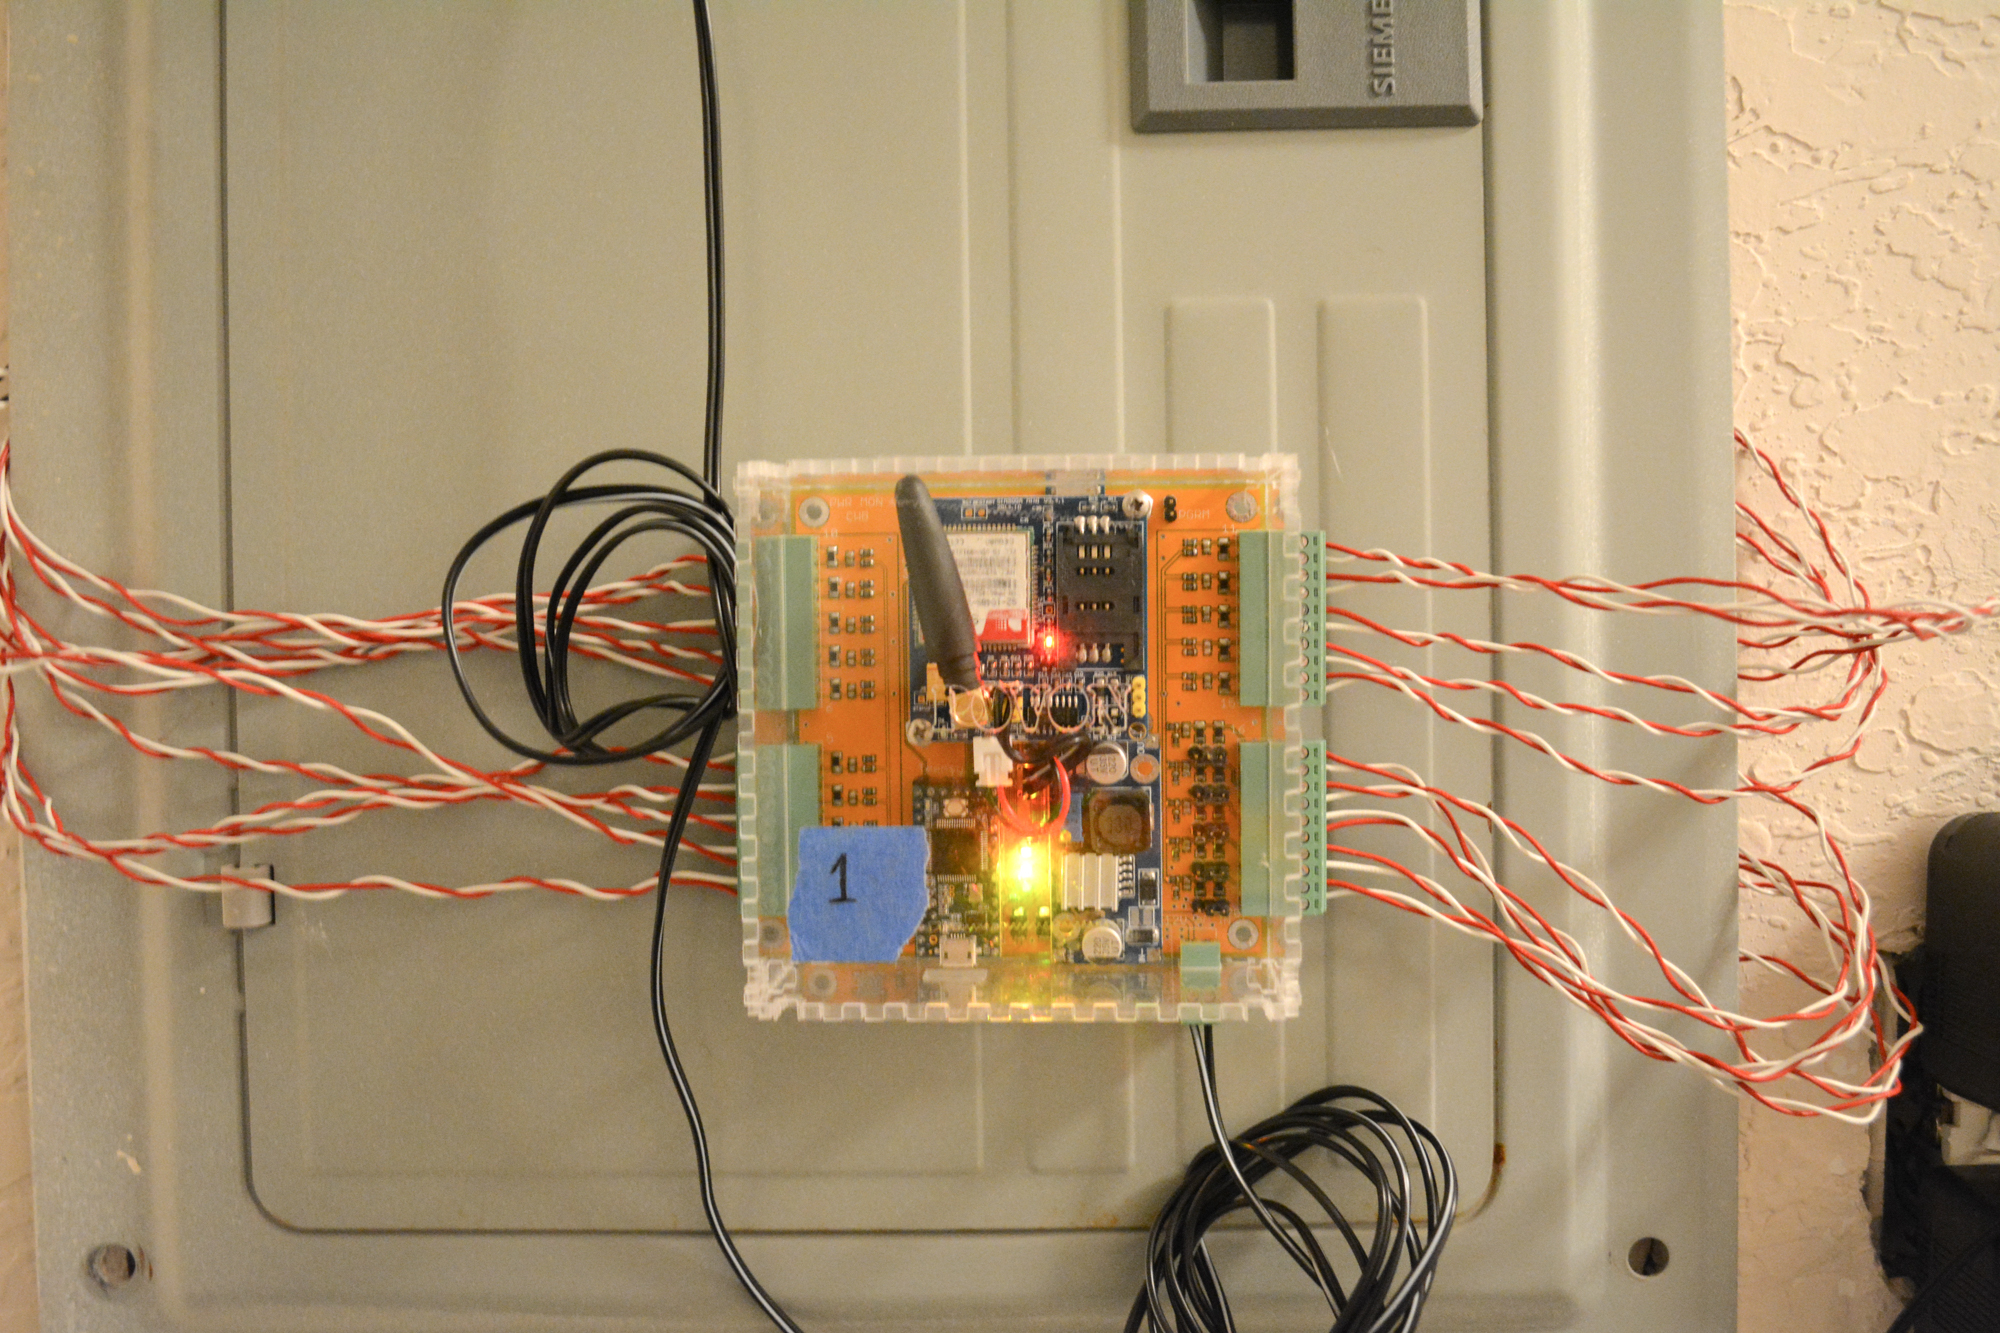 POVON home energy monitor Part 1: 20 Channel System - lostengineer com